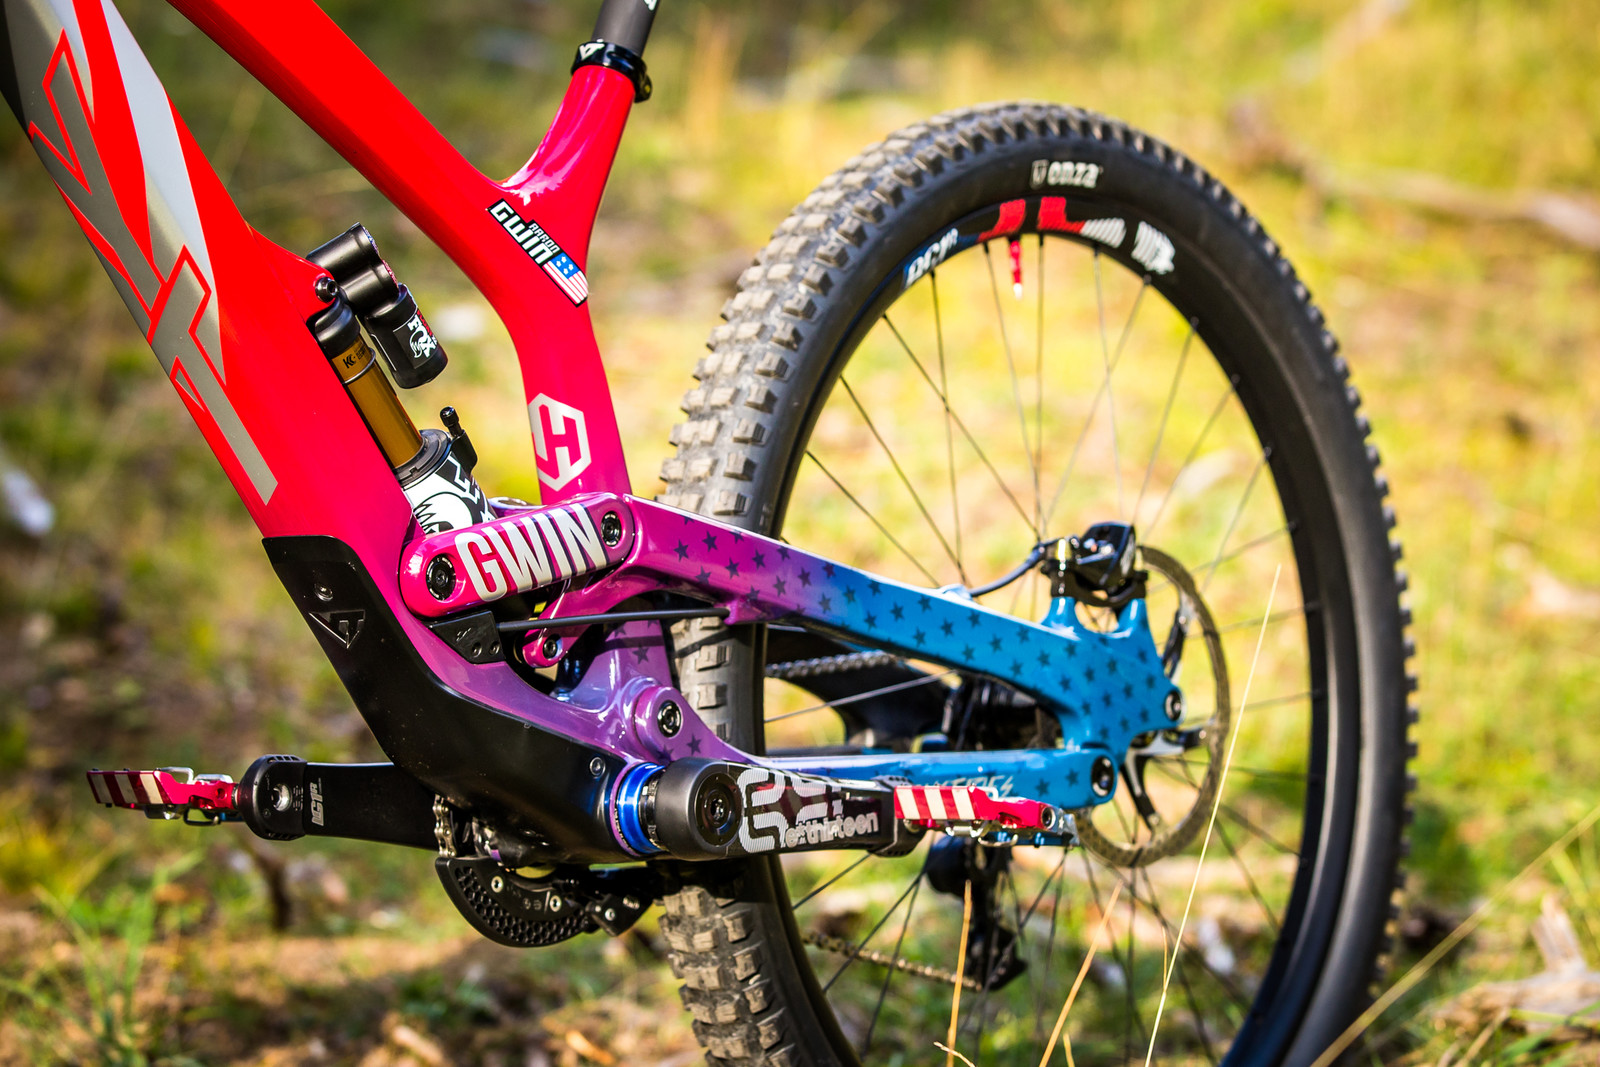 Big Wheels for a Big Man - WORLD CHAMPS BIKE - Aaron Gwin's YT TUES - Mountain Biking Pictures - Vital MTB